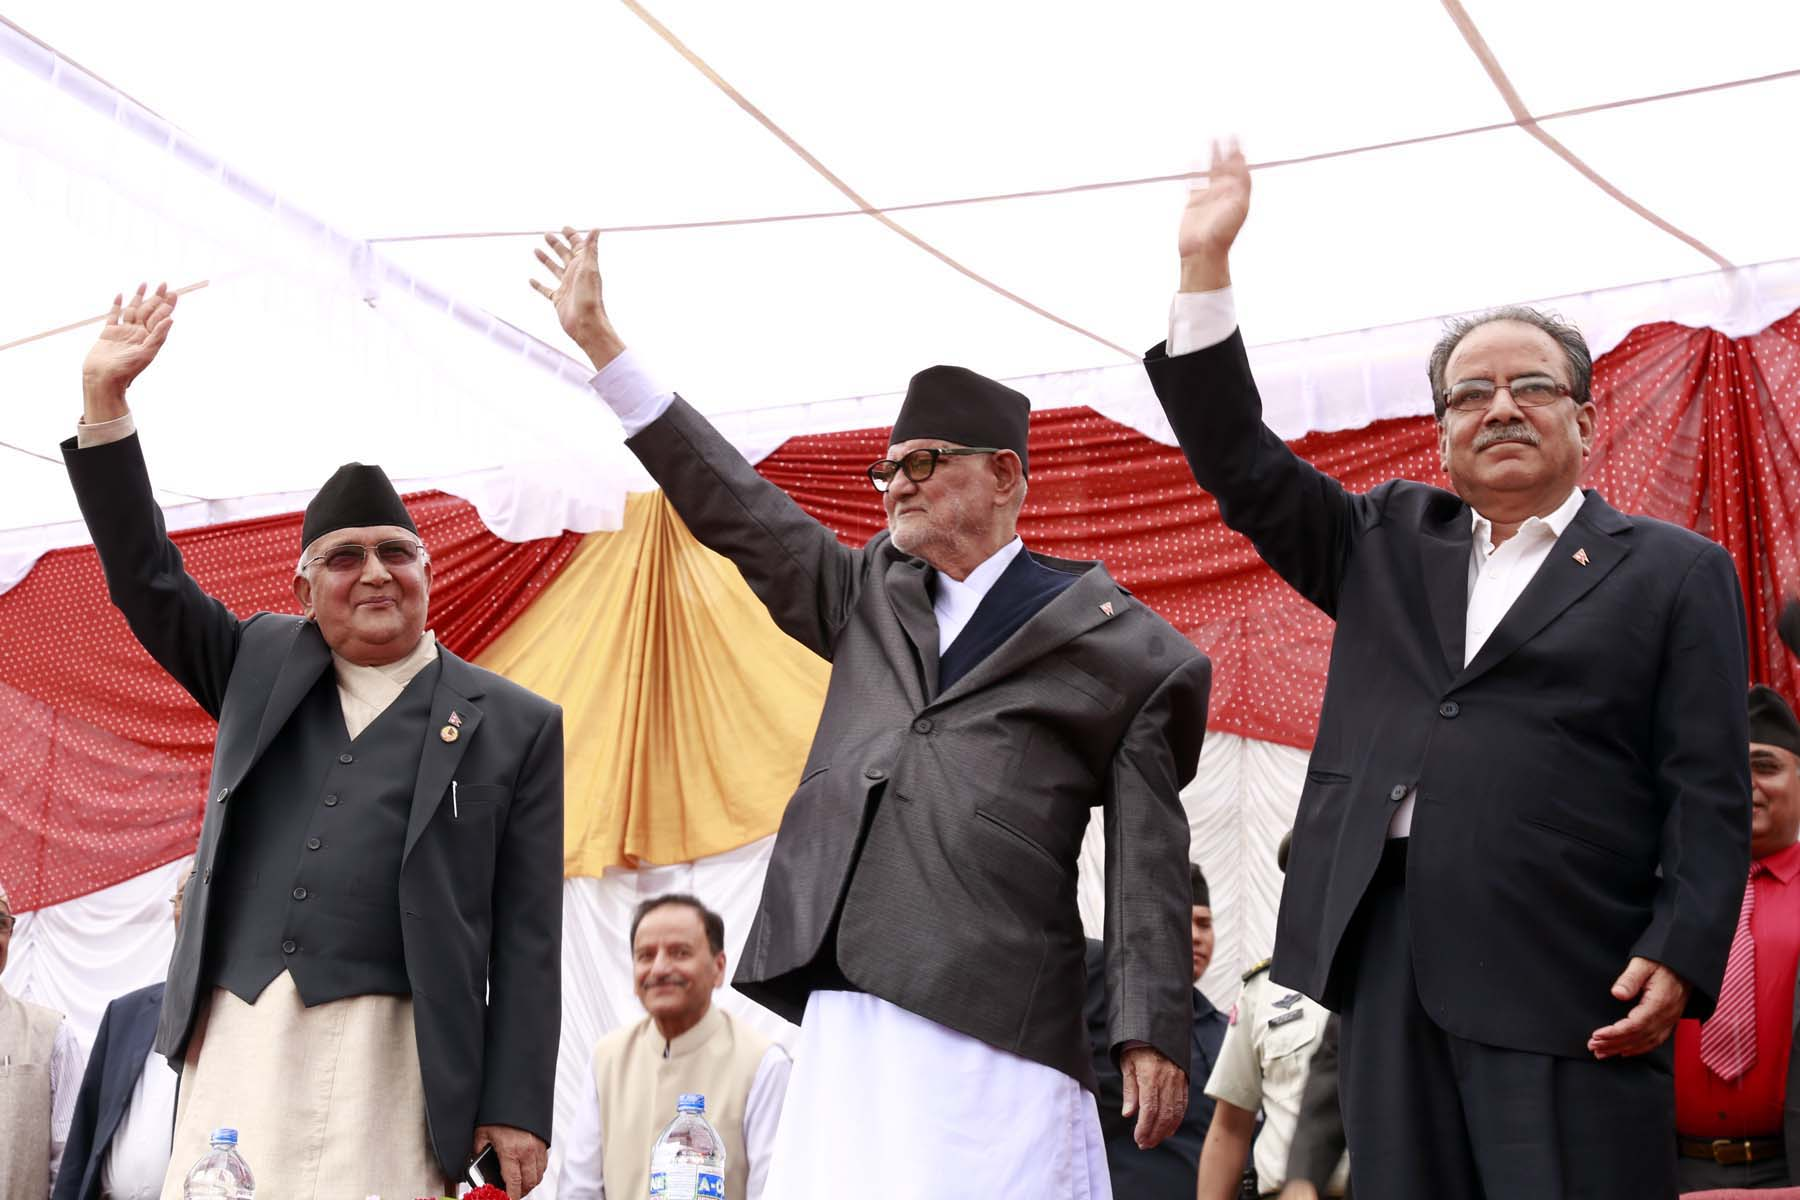 CPN-UML Chairman KP Sharma Oli (left), Nepali Congress Chairman Sushil Koirala (centre) and UCPN-Maoist Chairman Pushpa Kamal Dahal waving to the public during their joint welcome ceremony, to welcome the newly promulgated constitution, organised in Tundikhel on Monday, September 21, 2015. Photo: RSS